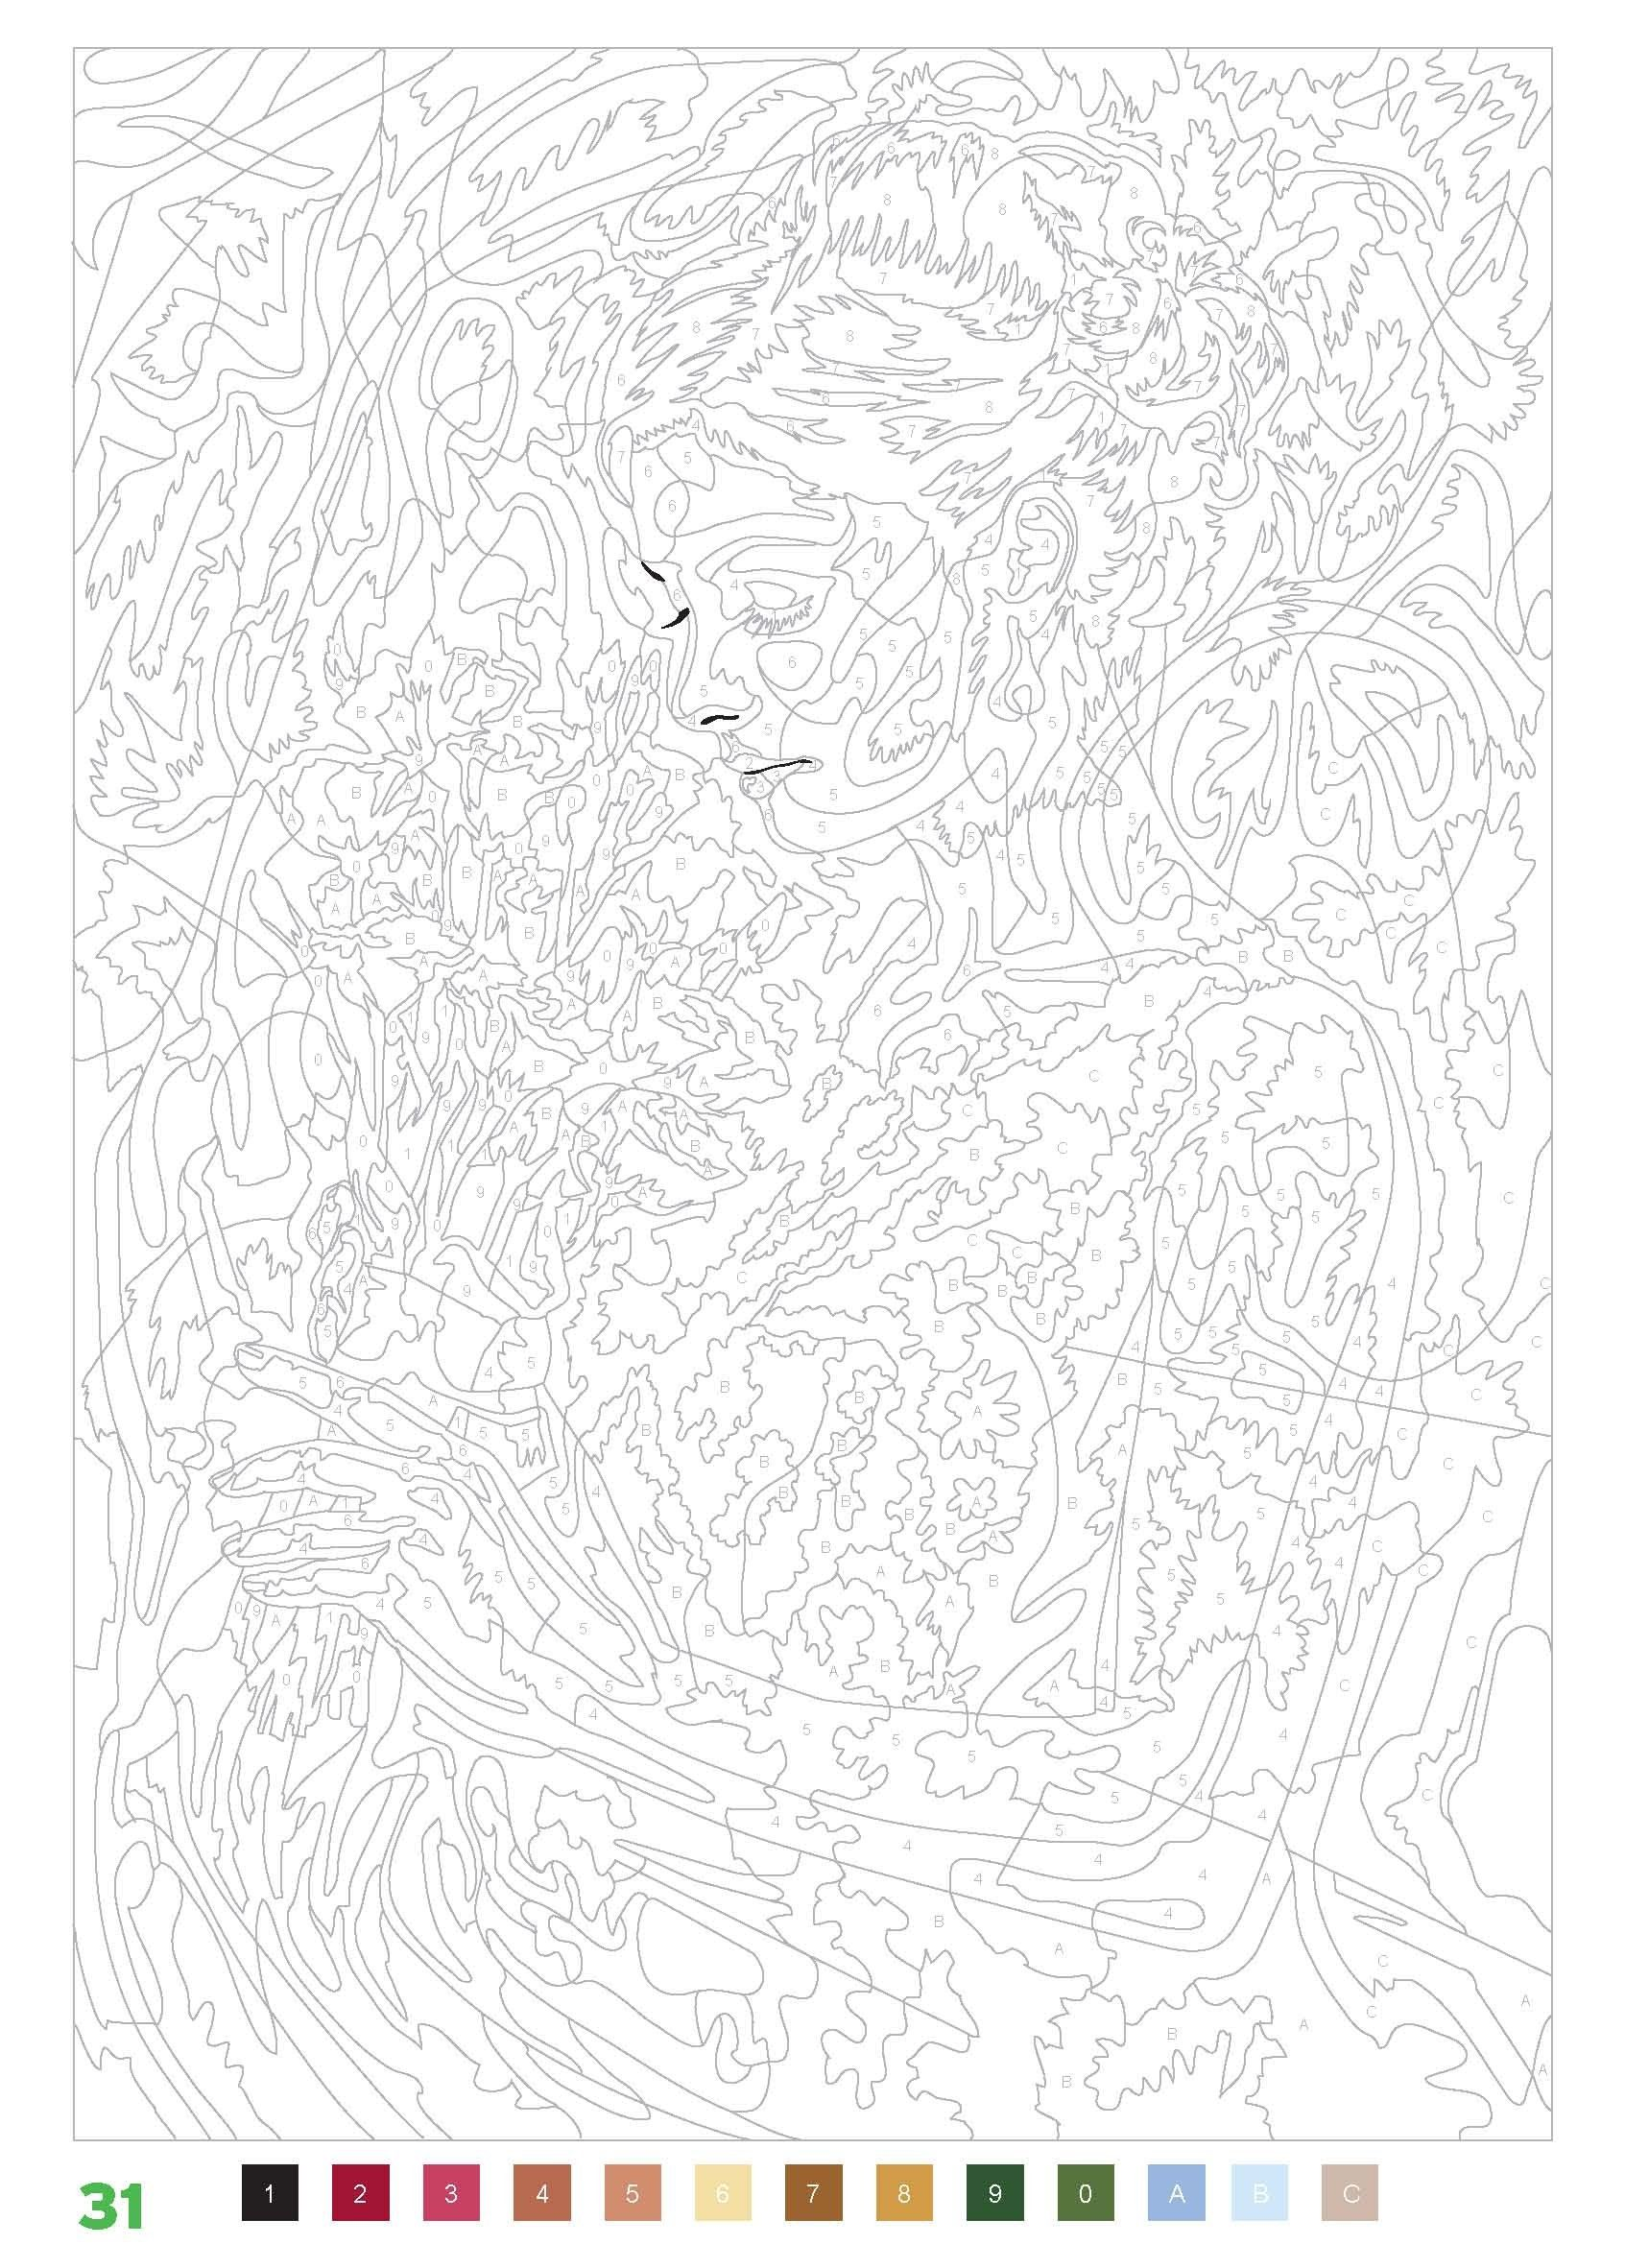 24 Colouring ideas  coloring pages, coloring books, coloring